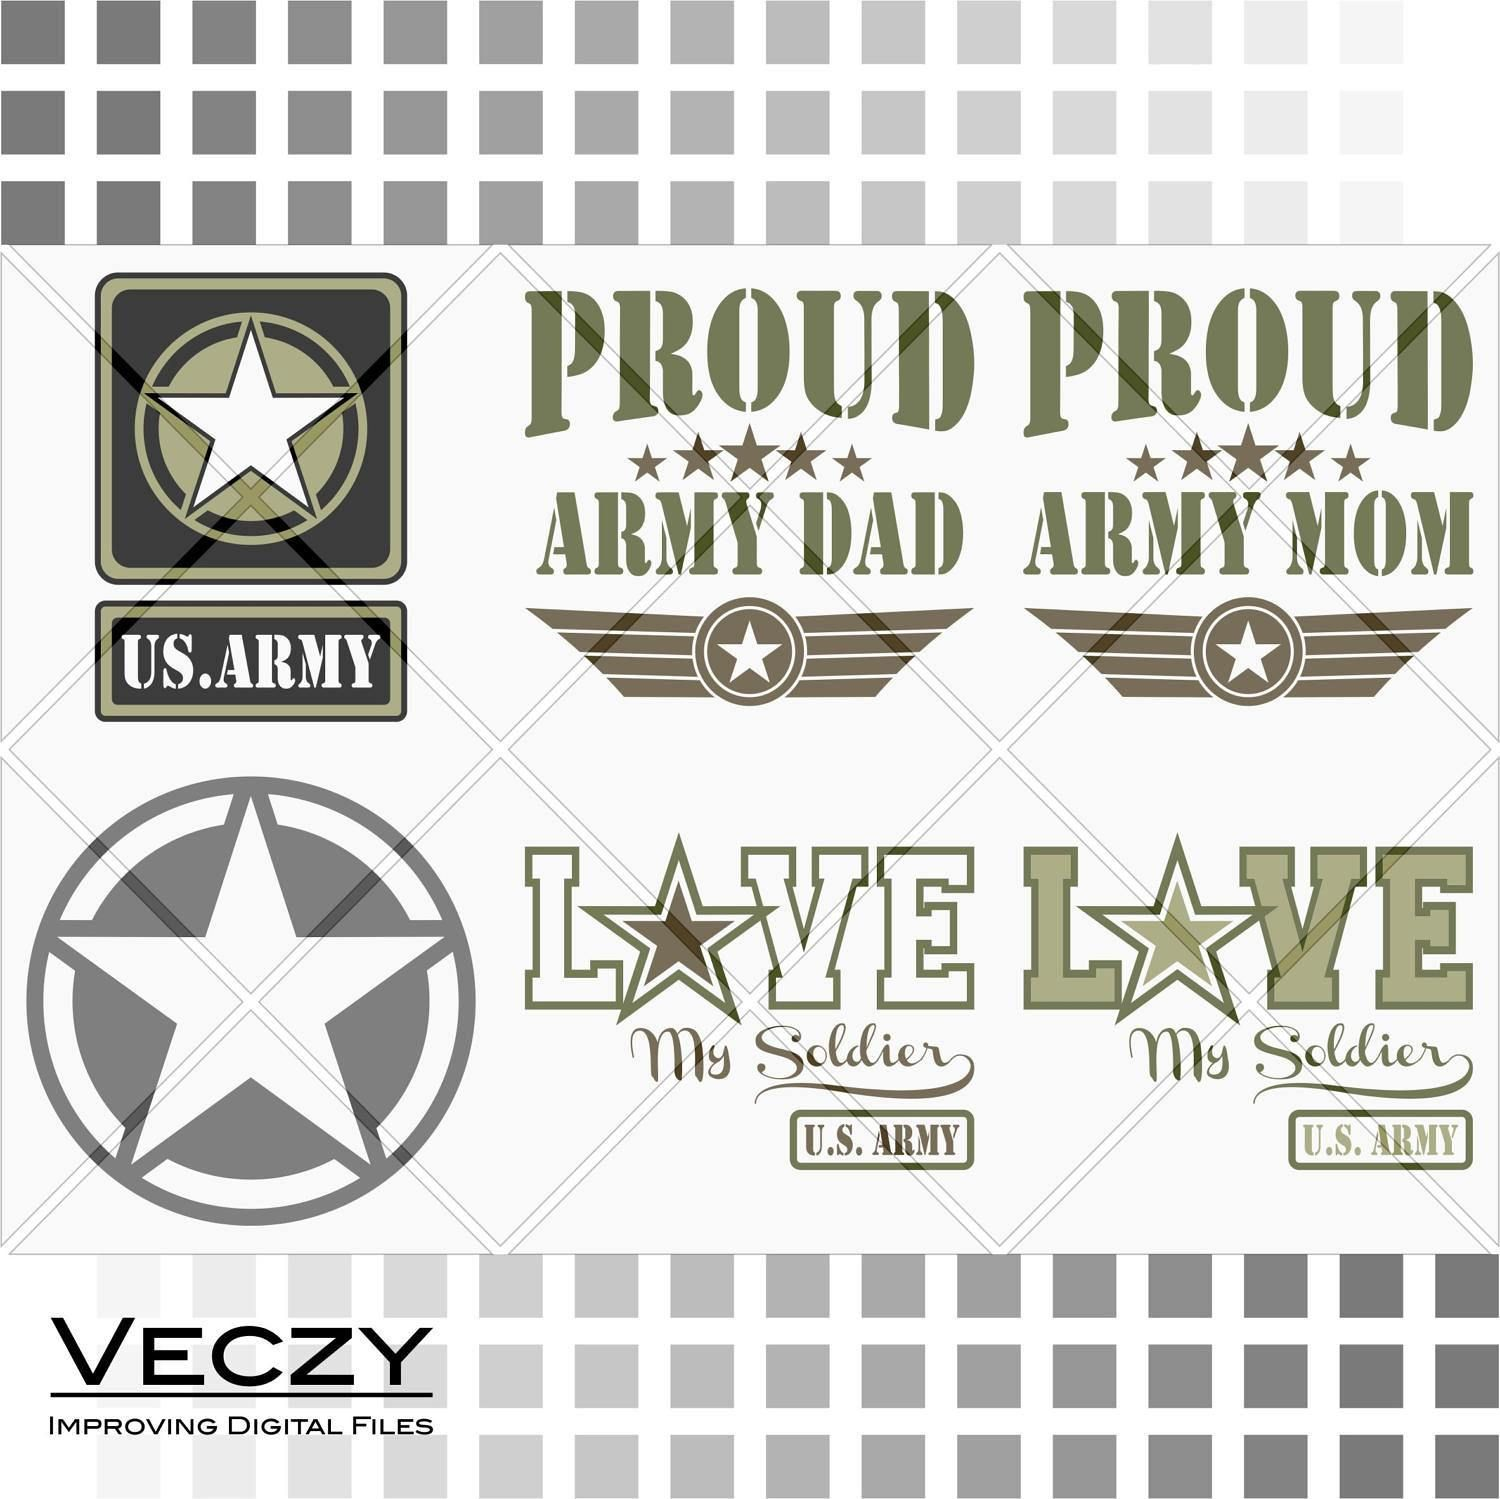 Army Svg Proud Army Dad Proud Army Mom Love My Soldier Oskar Mike Army Star Us Army Army Mom Svg Files For Cricut By V Army Mom Army Dads Cameo Projects